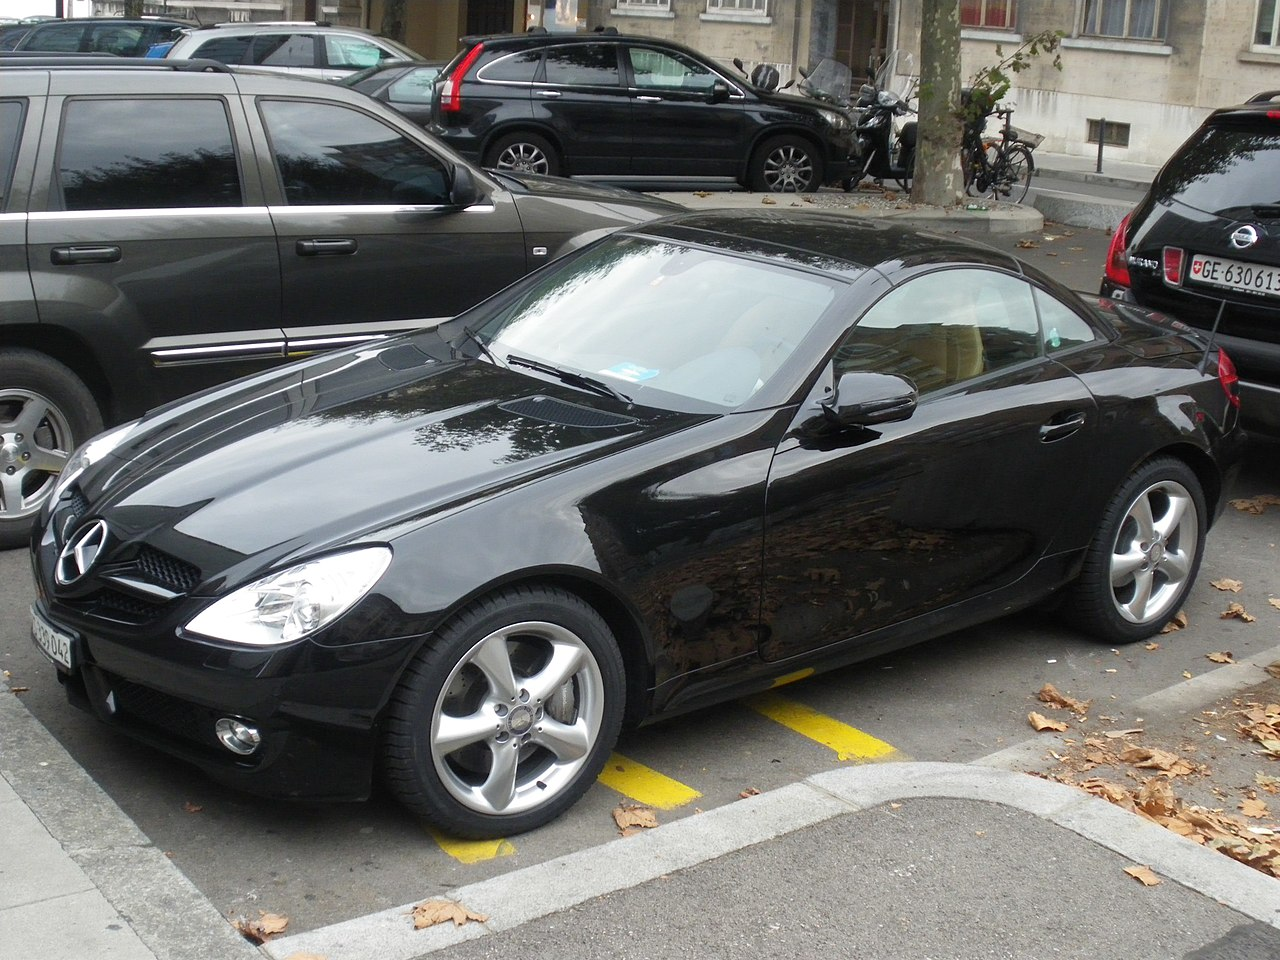 S Class Coupe >> File:Black Mercedes Benz Coupe in Geneva, Switzerland.jpg - Wikimedia Commons